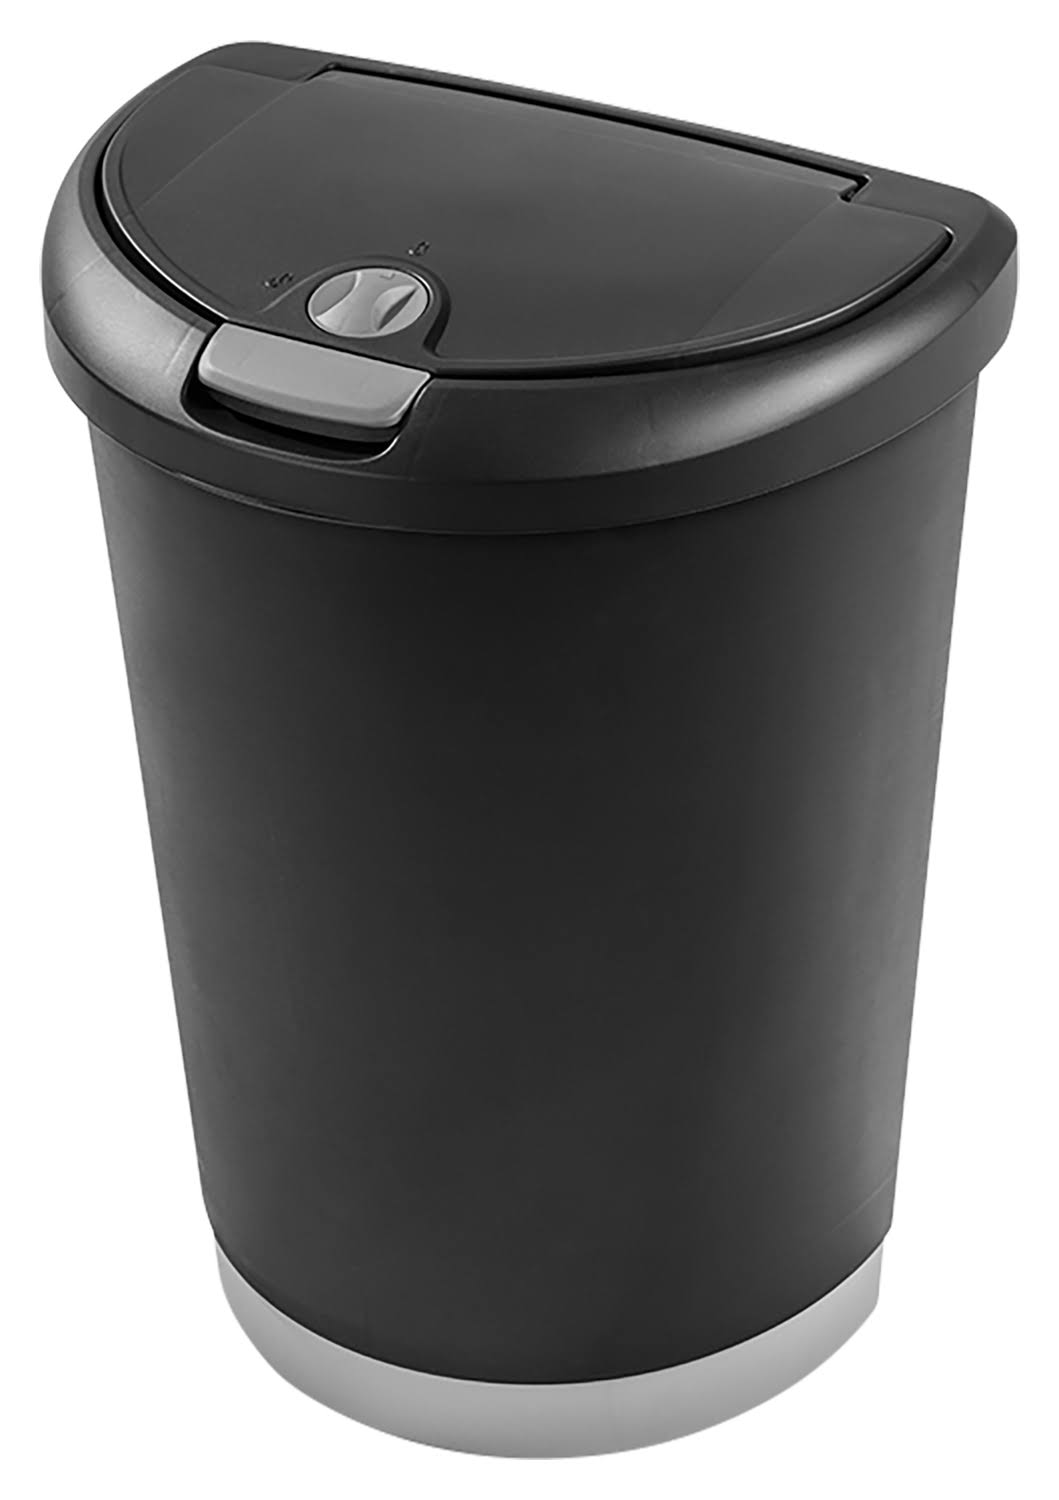 Sterilite Locking TouchTop Wastebasket - Black, 12.3gal